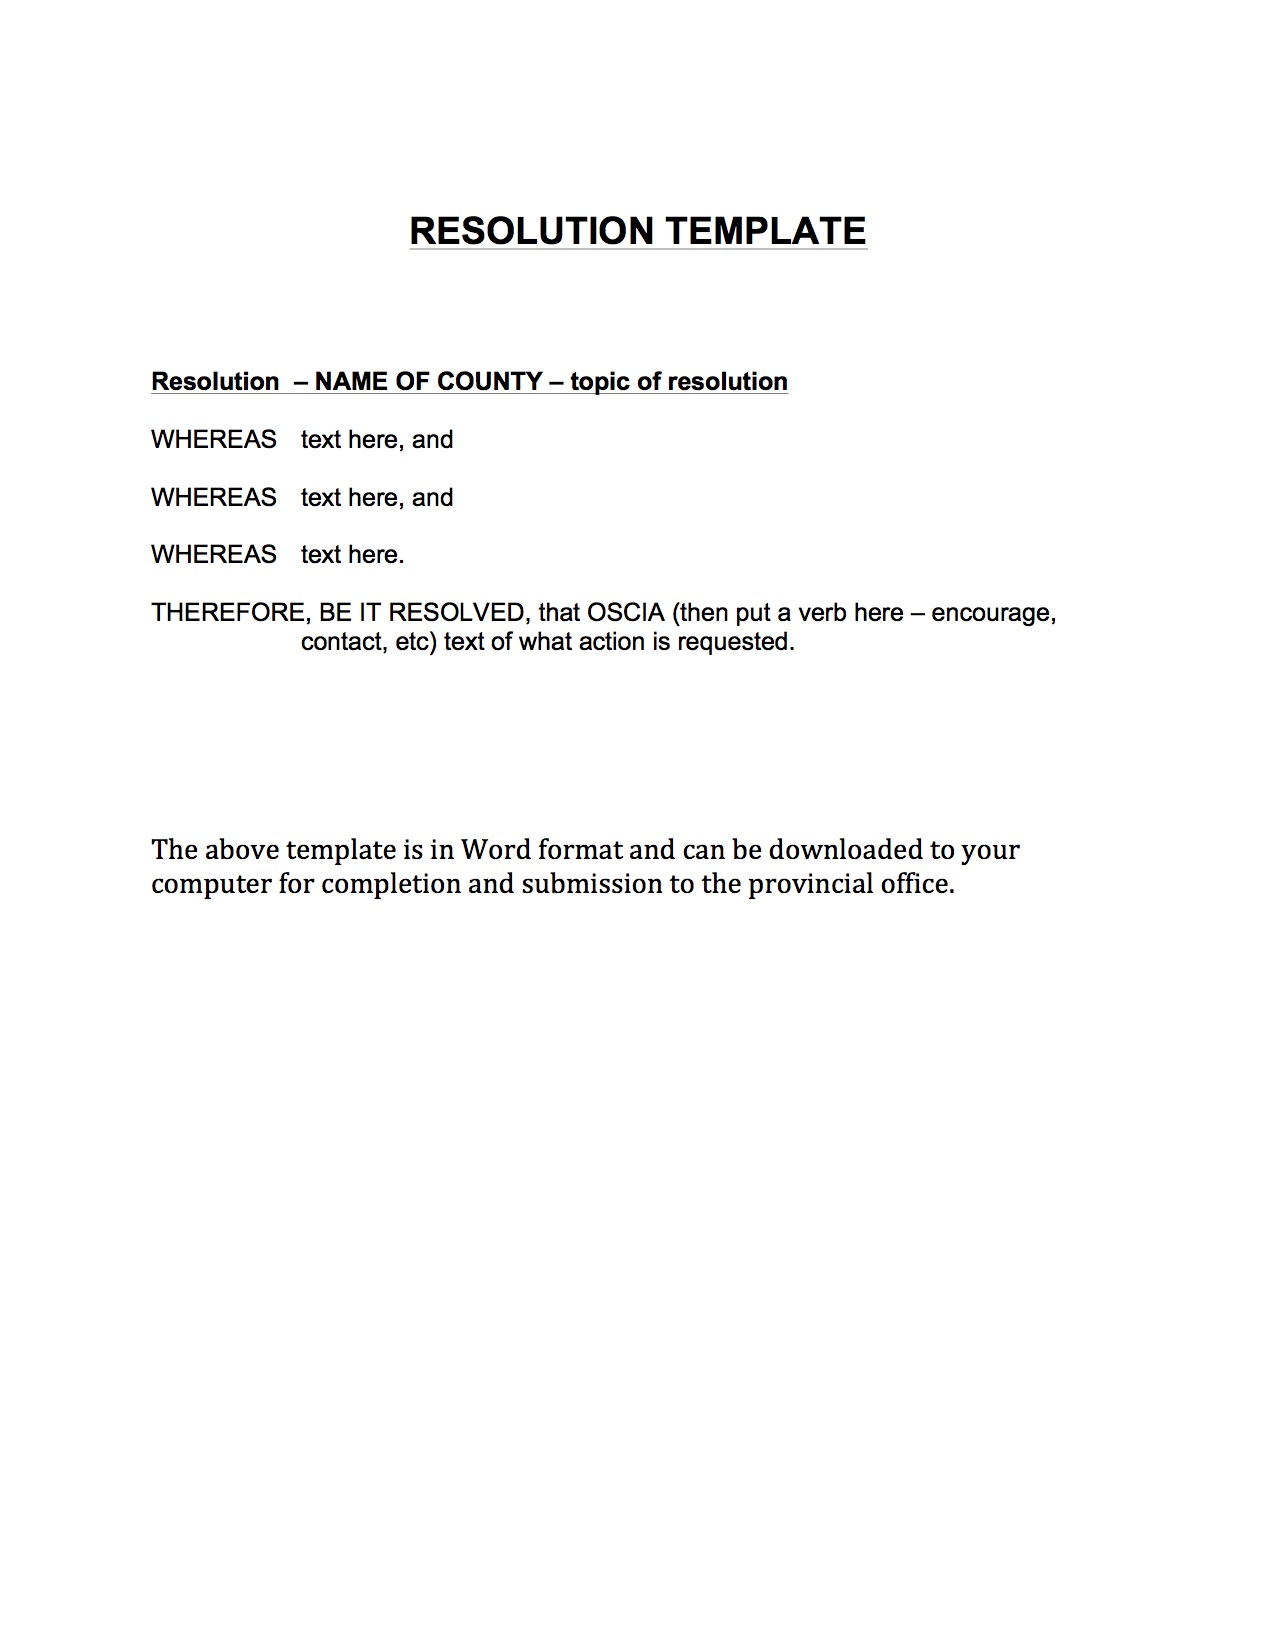 Resolutions resolutions oscia here you can find resolution template altavistaventures Choice Image